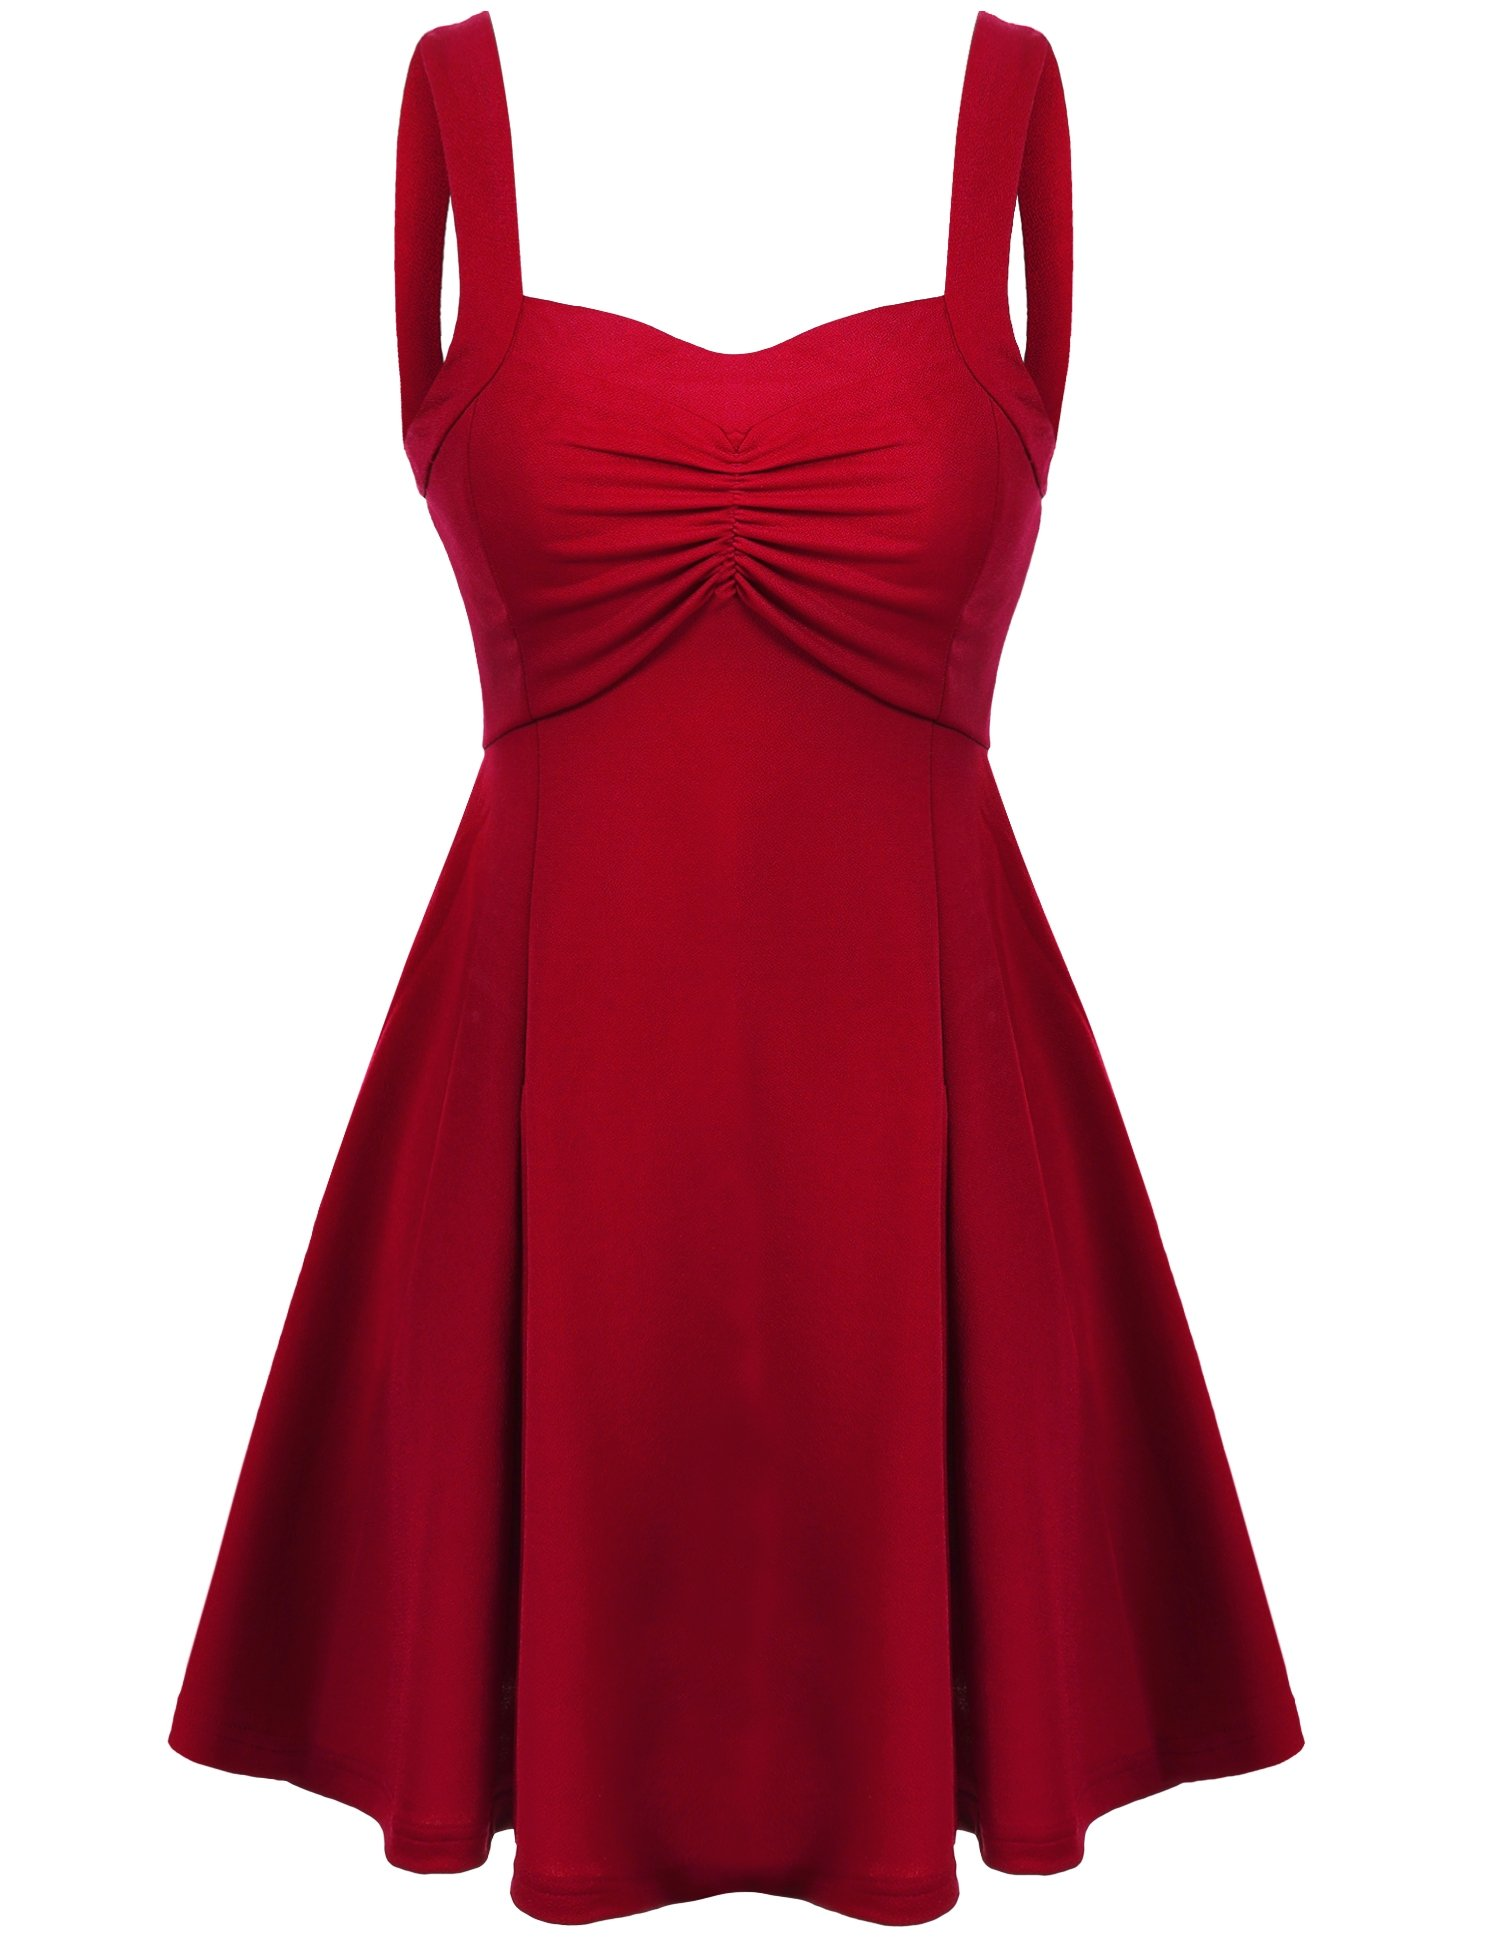 Beyove Women's Wide Strap Vintage 50s 60s Swing Style Cotton Dresses (Red/S)